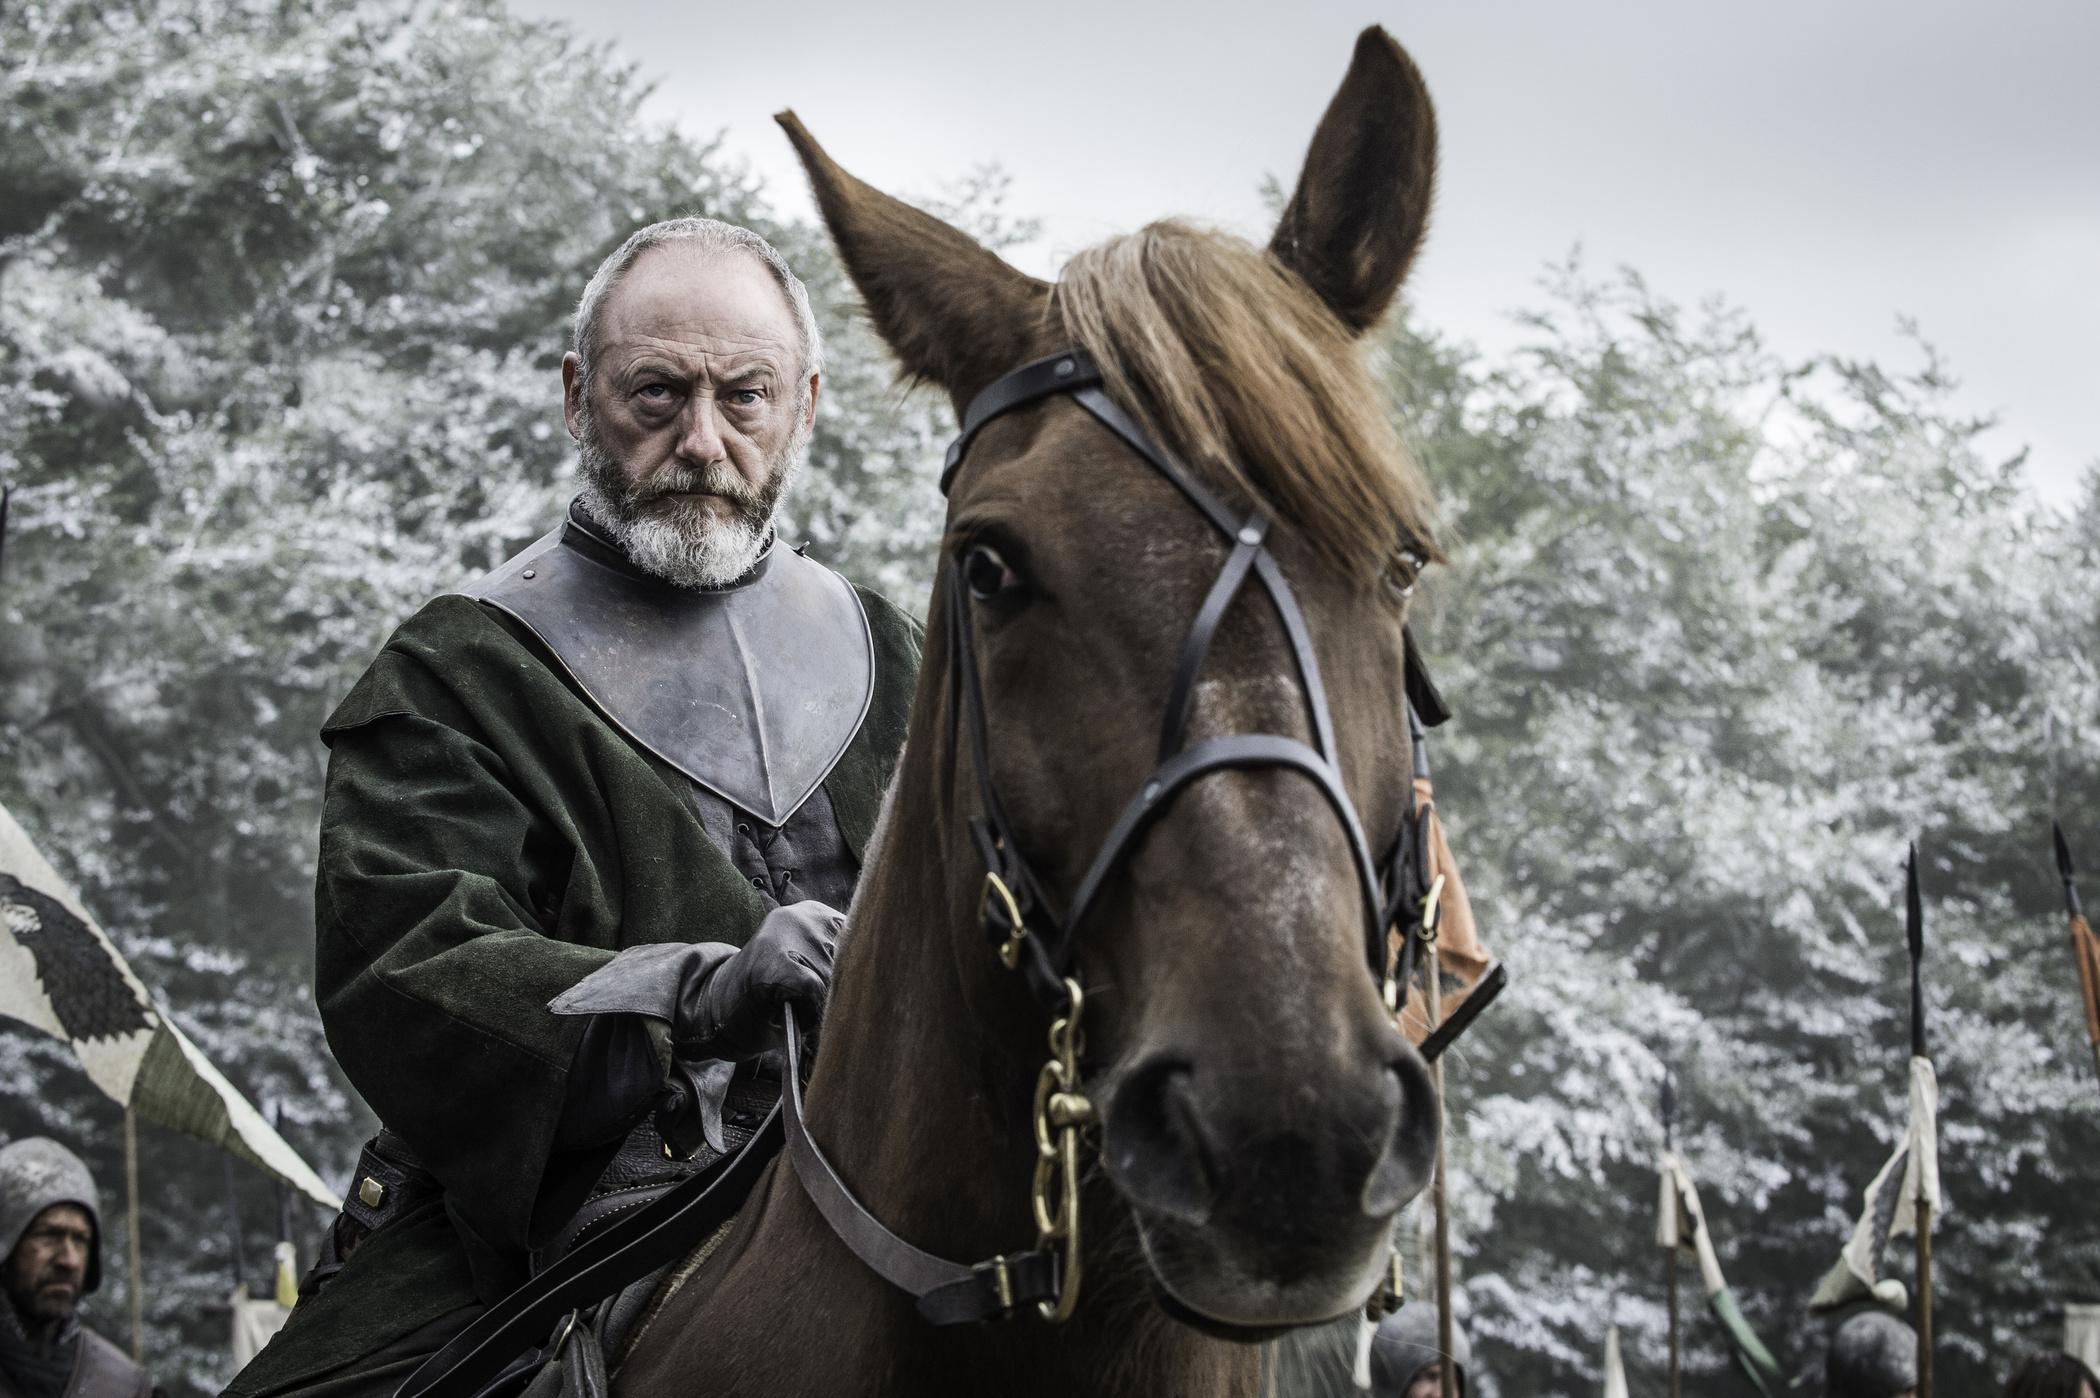 Game-Of-Thrones-QA-Liam-Cunningham-On-The-Battle-Of-The-Bastards